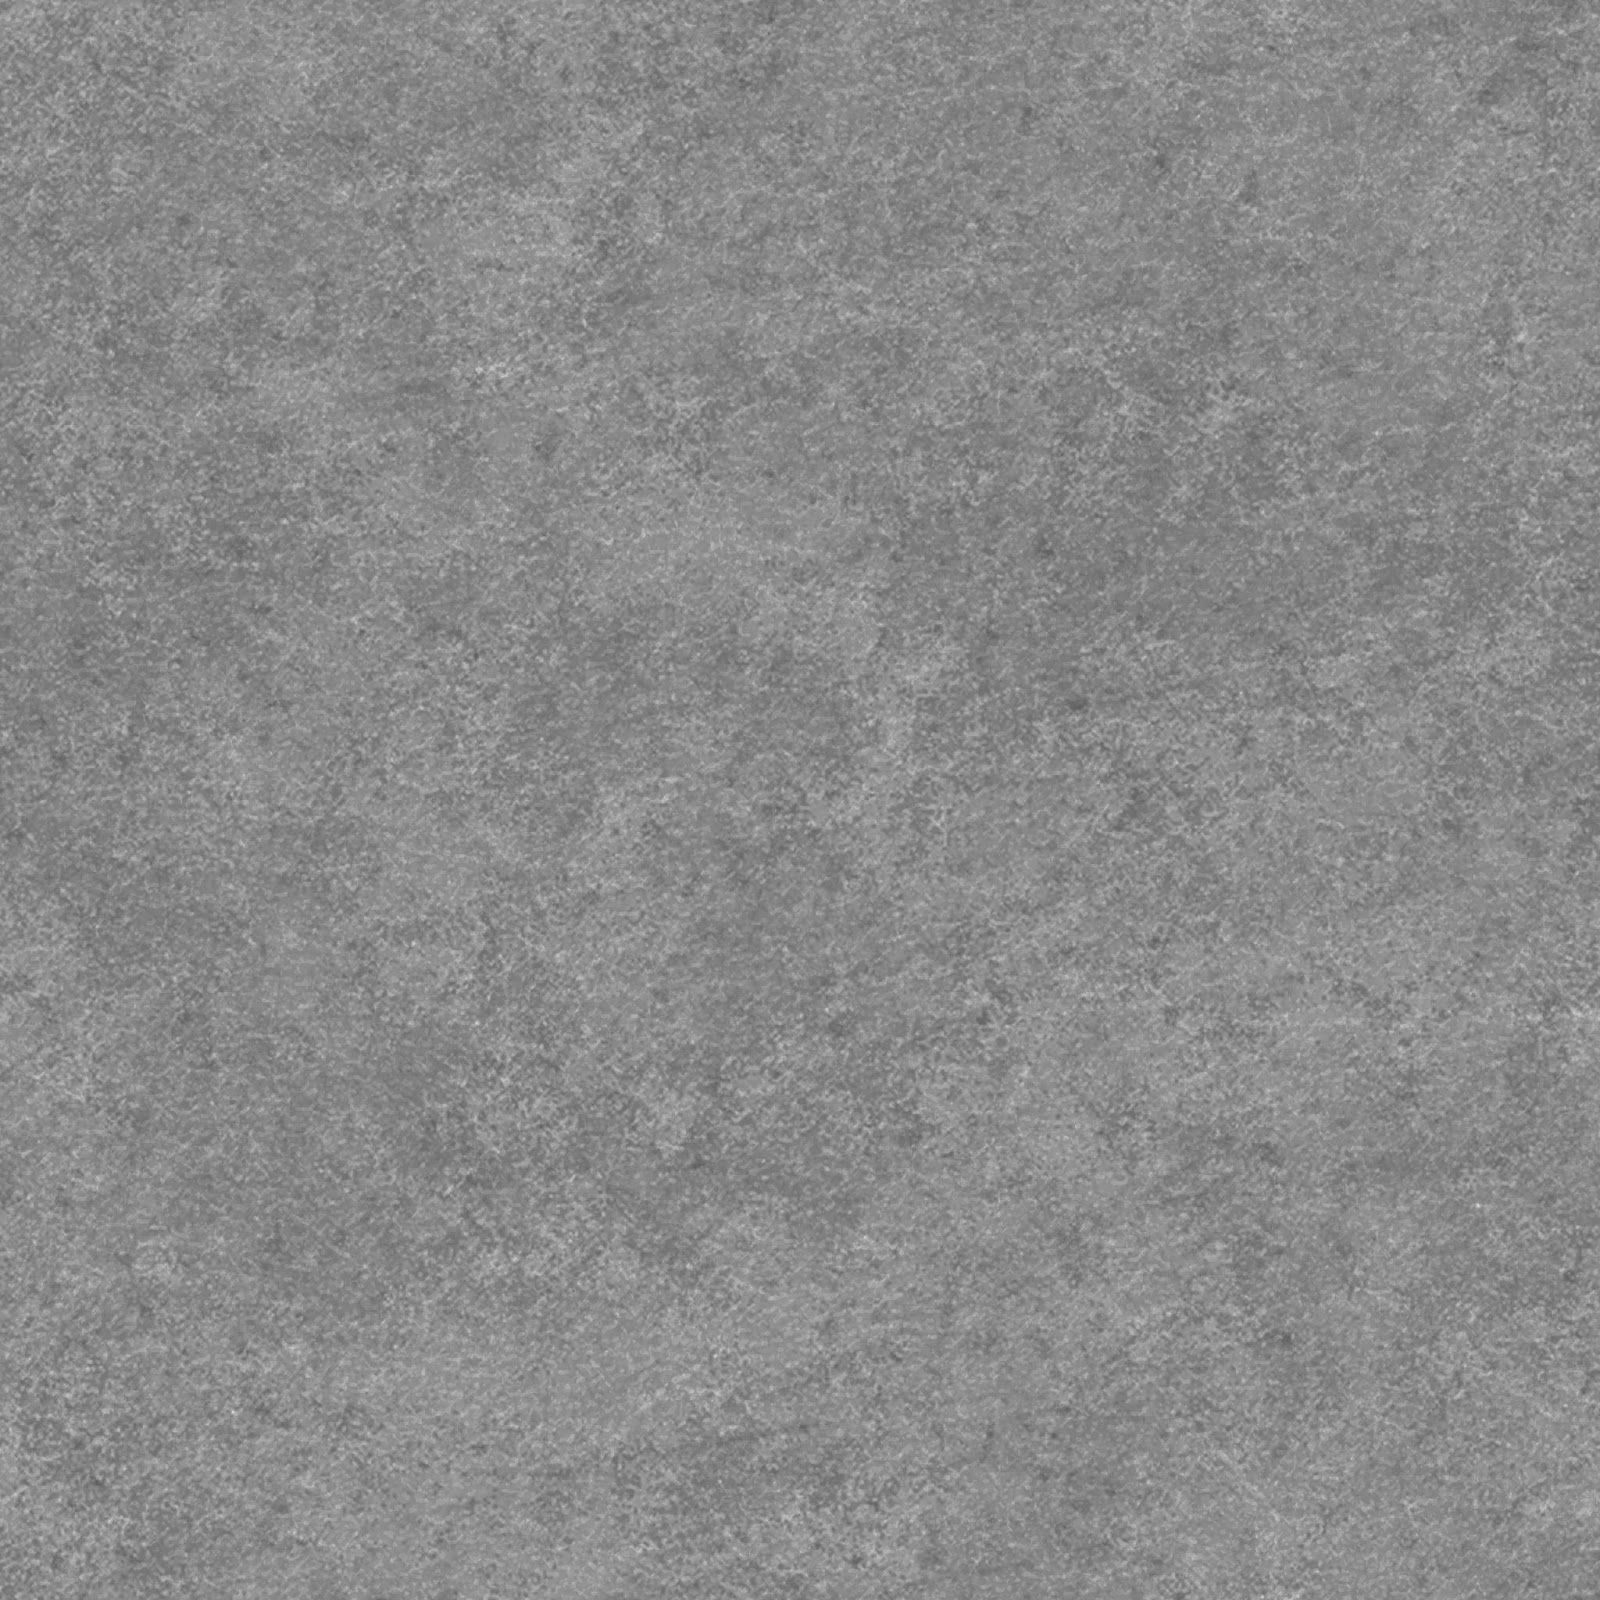 Brushed Metal Texture - Right Click to Save | illustration 3 ...